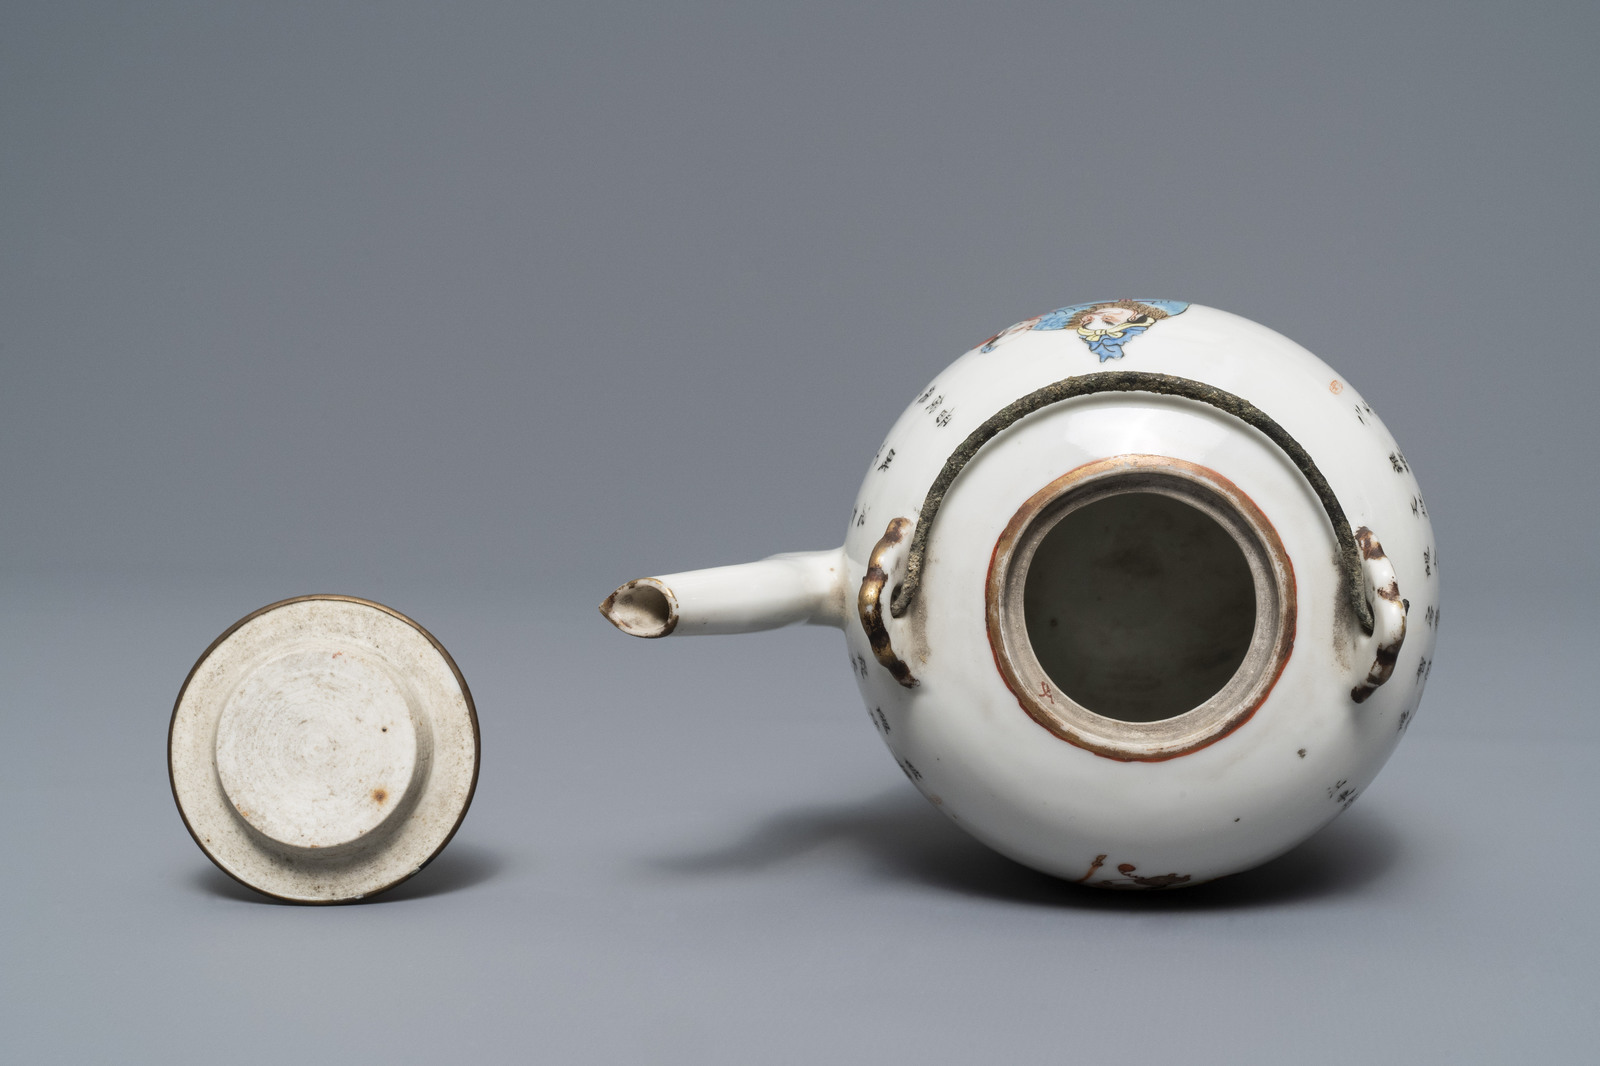 Lot 40 - A Chinese famille rose 'Wu Shuang Pu' teapot and cover, Daoguang mark, 19th C.